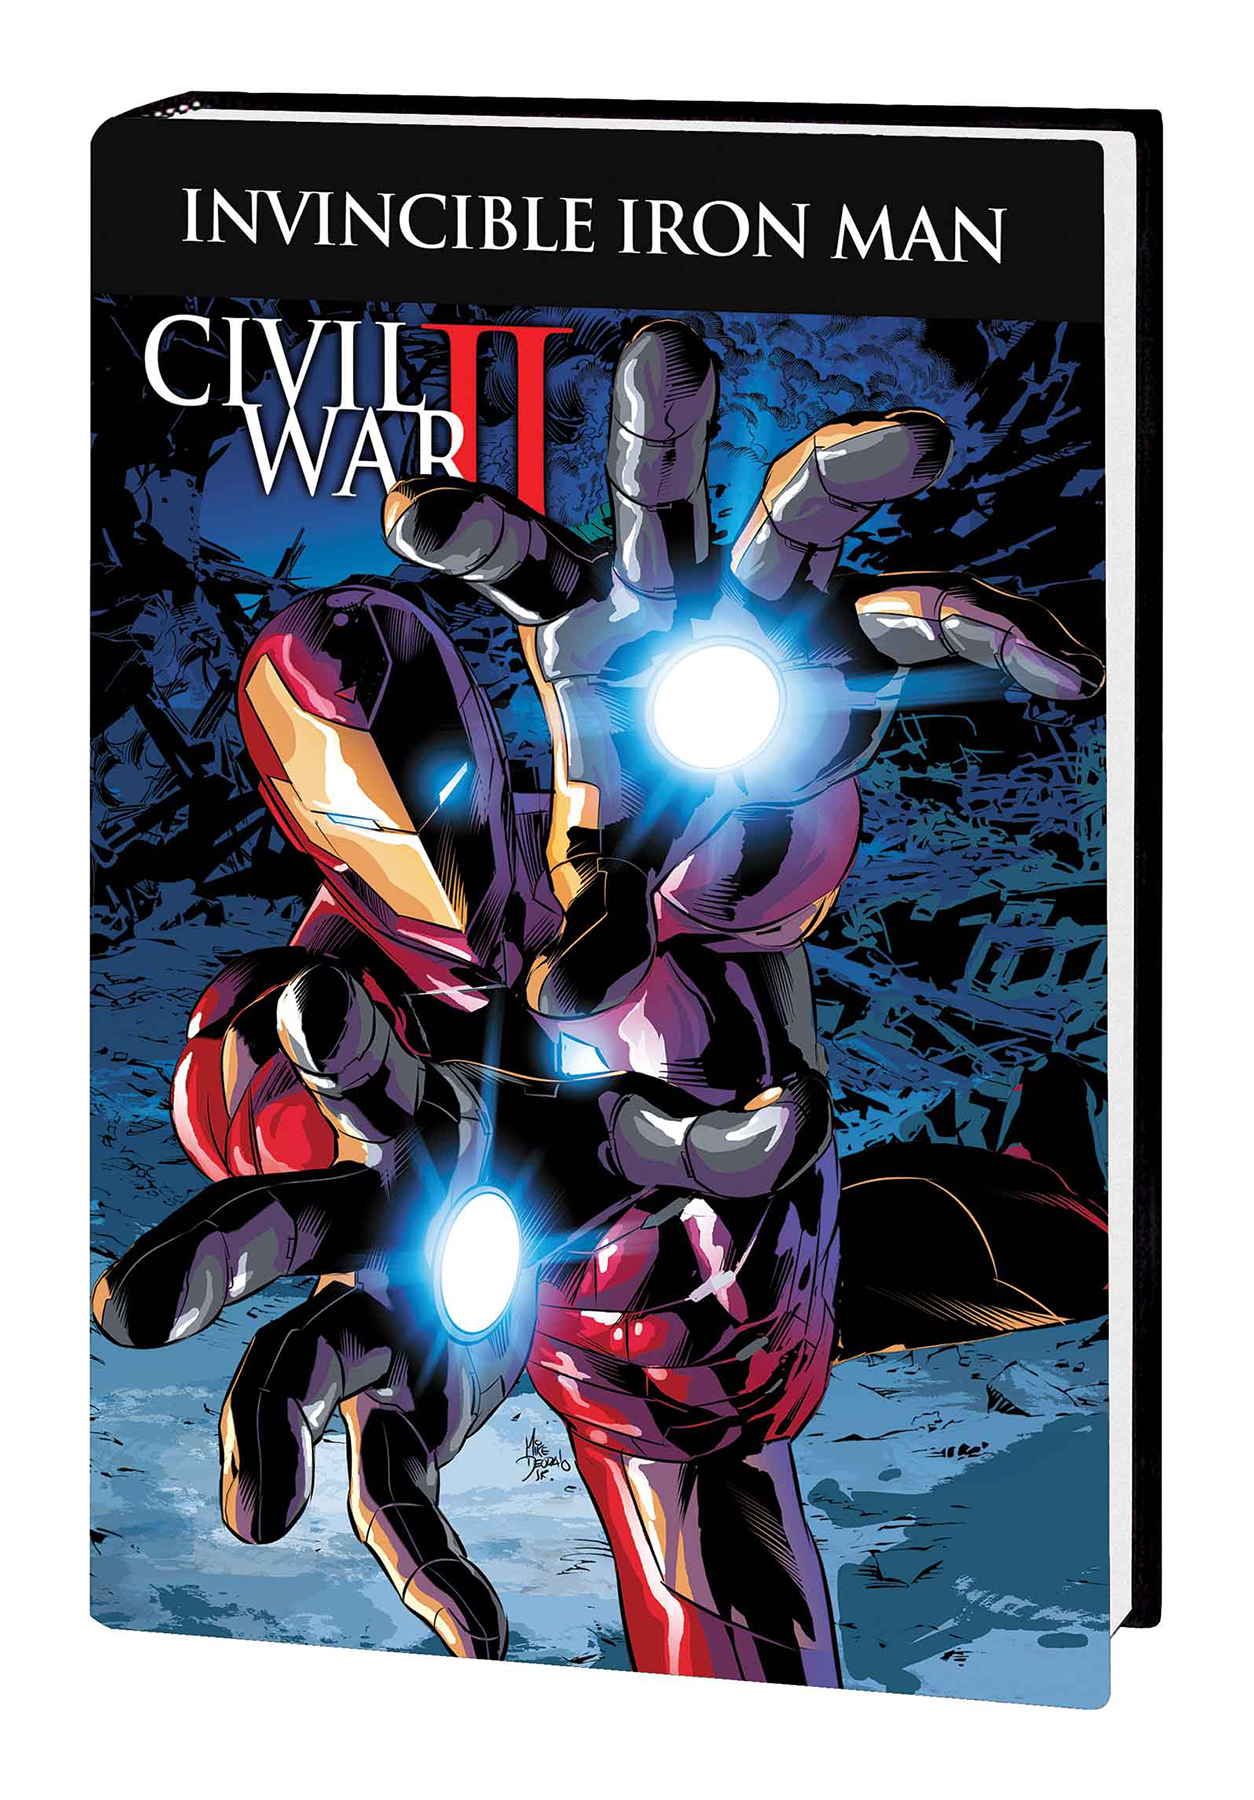 INVINCIBLE IRON MAN PREM HC VOL 03 CIVIL WAR II